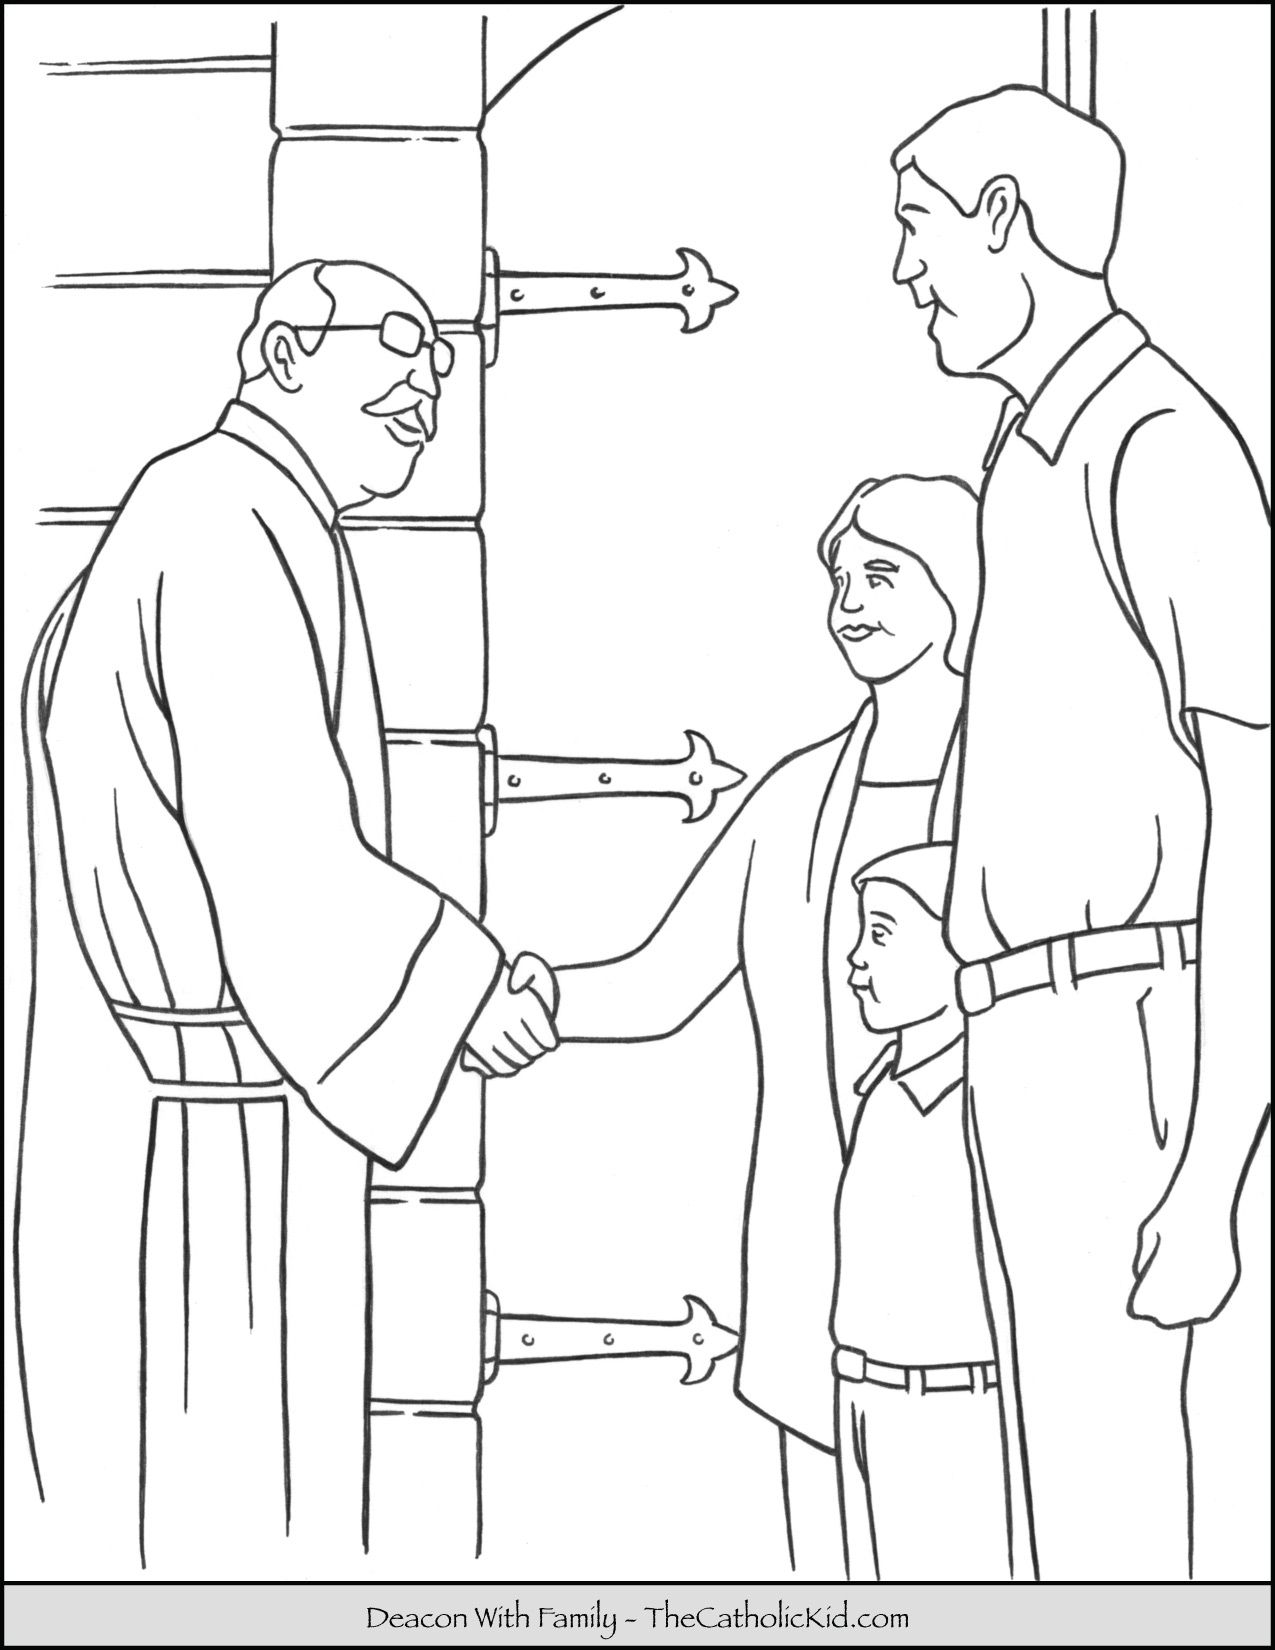 Deacon Coloring Page Thecatholickid Com Coloring Pages